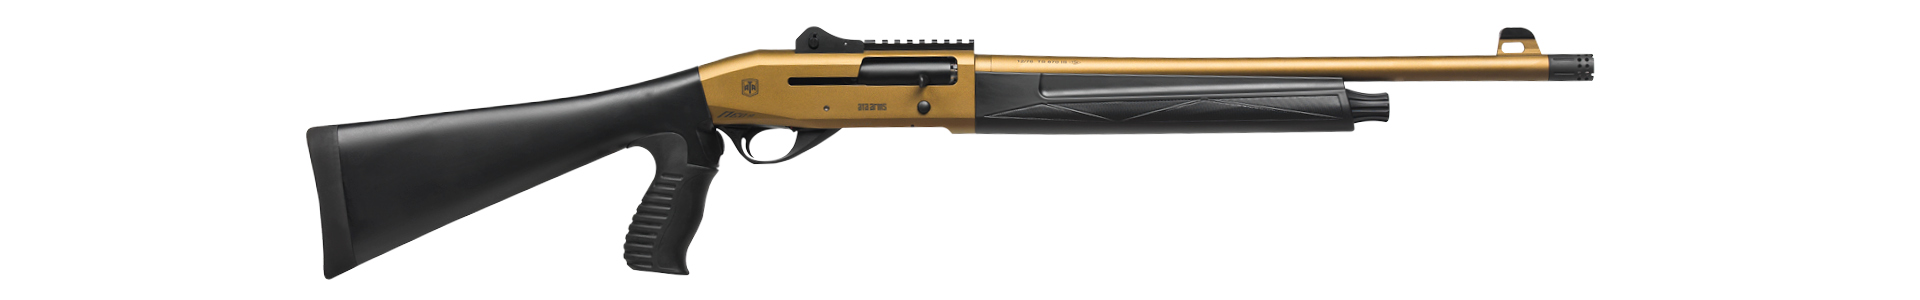 NEO TACTICAL BRONZE